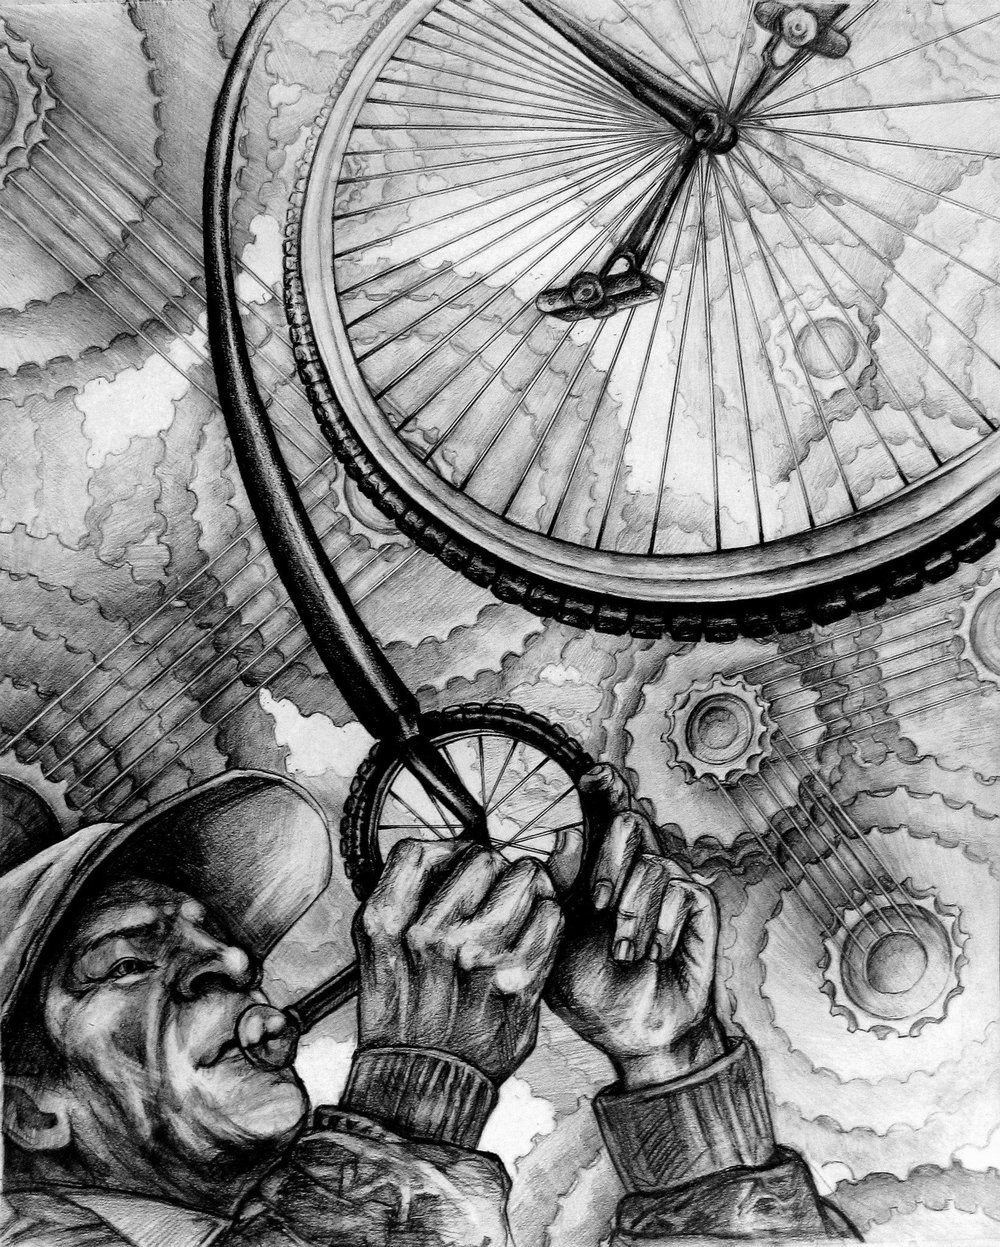 RISD BIKE - Submission for RISD's prompt: Draw A Bike18' x 24' Graphite